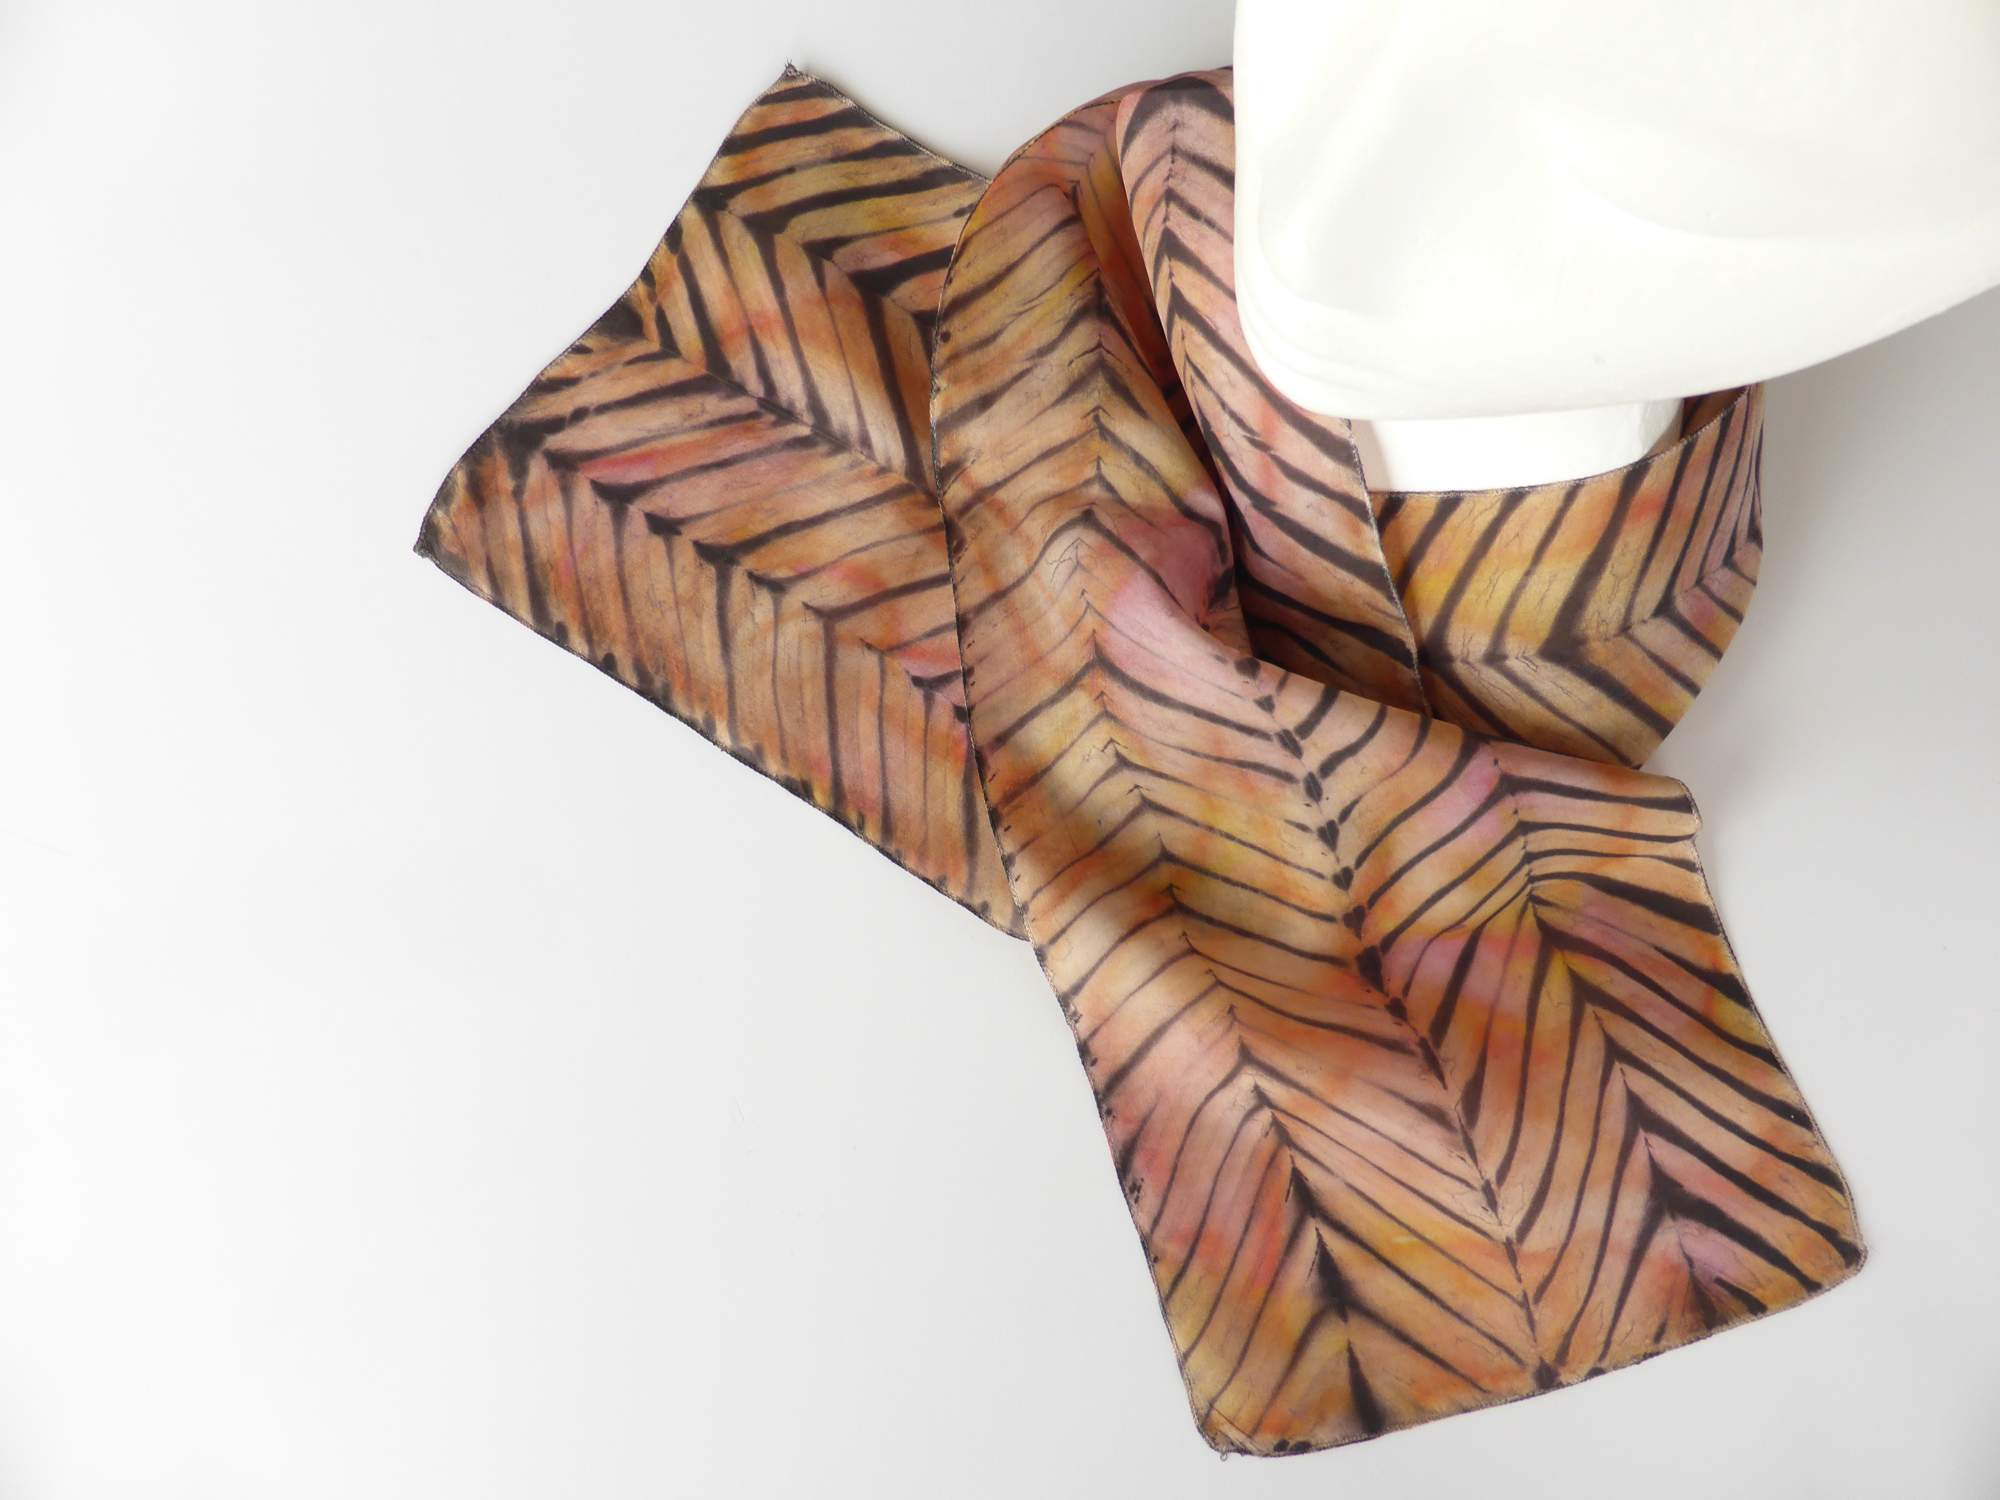 Gold & Orange Arashi Shibori Silk Scarf by Andrea McCallum